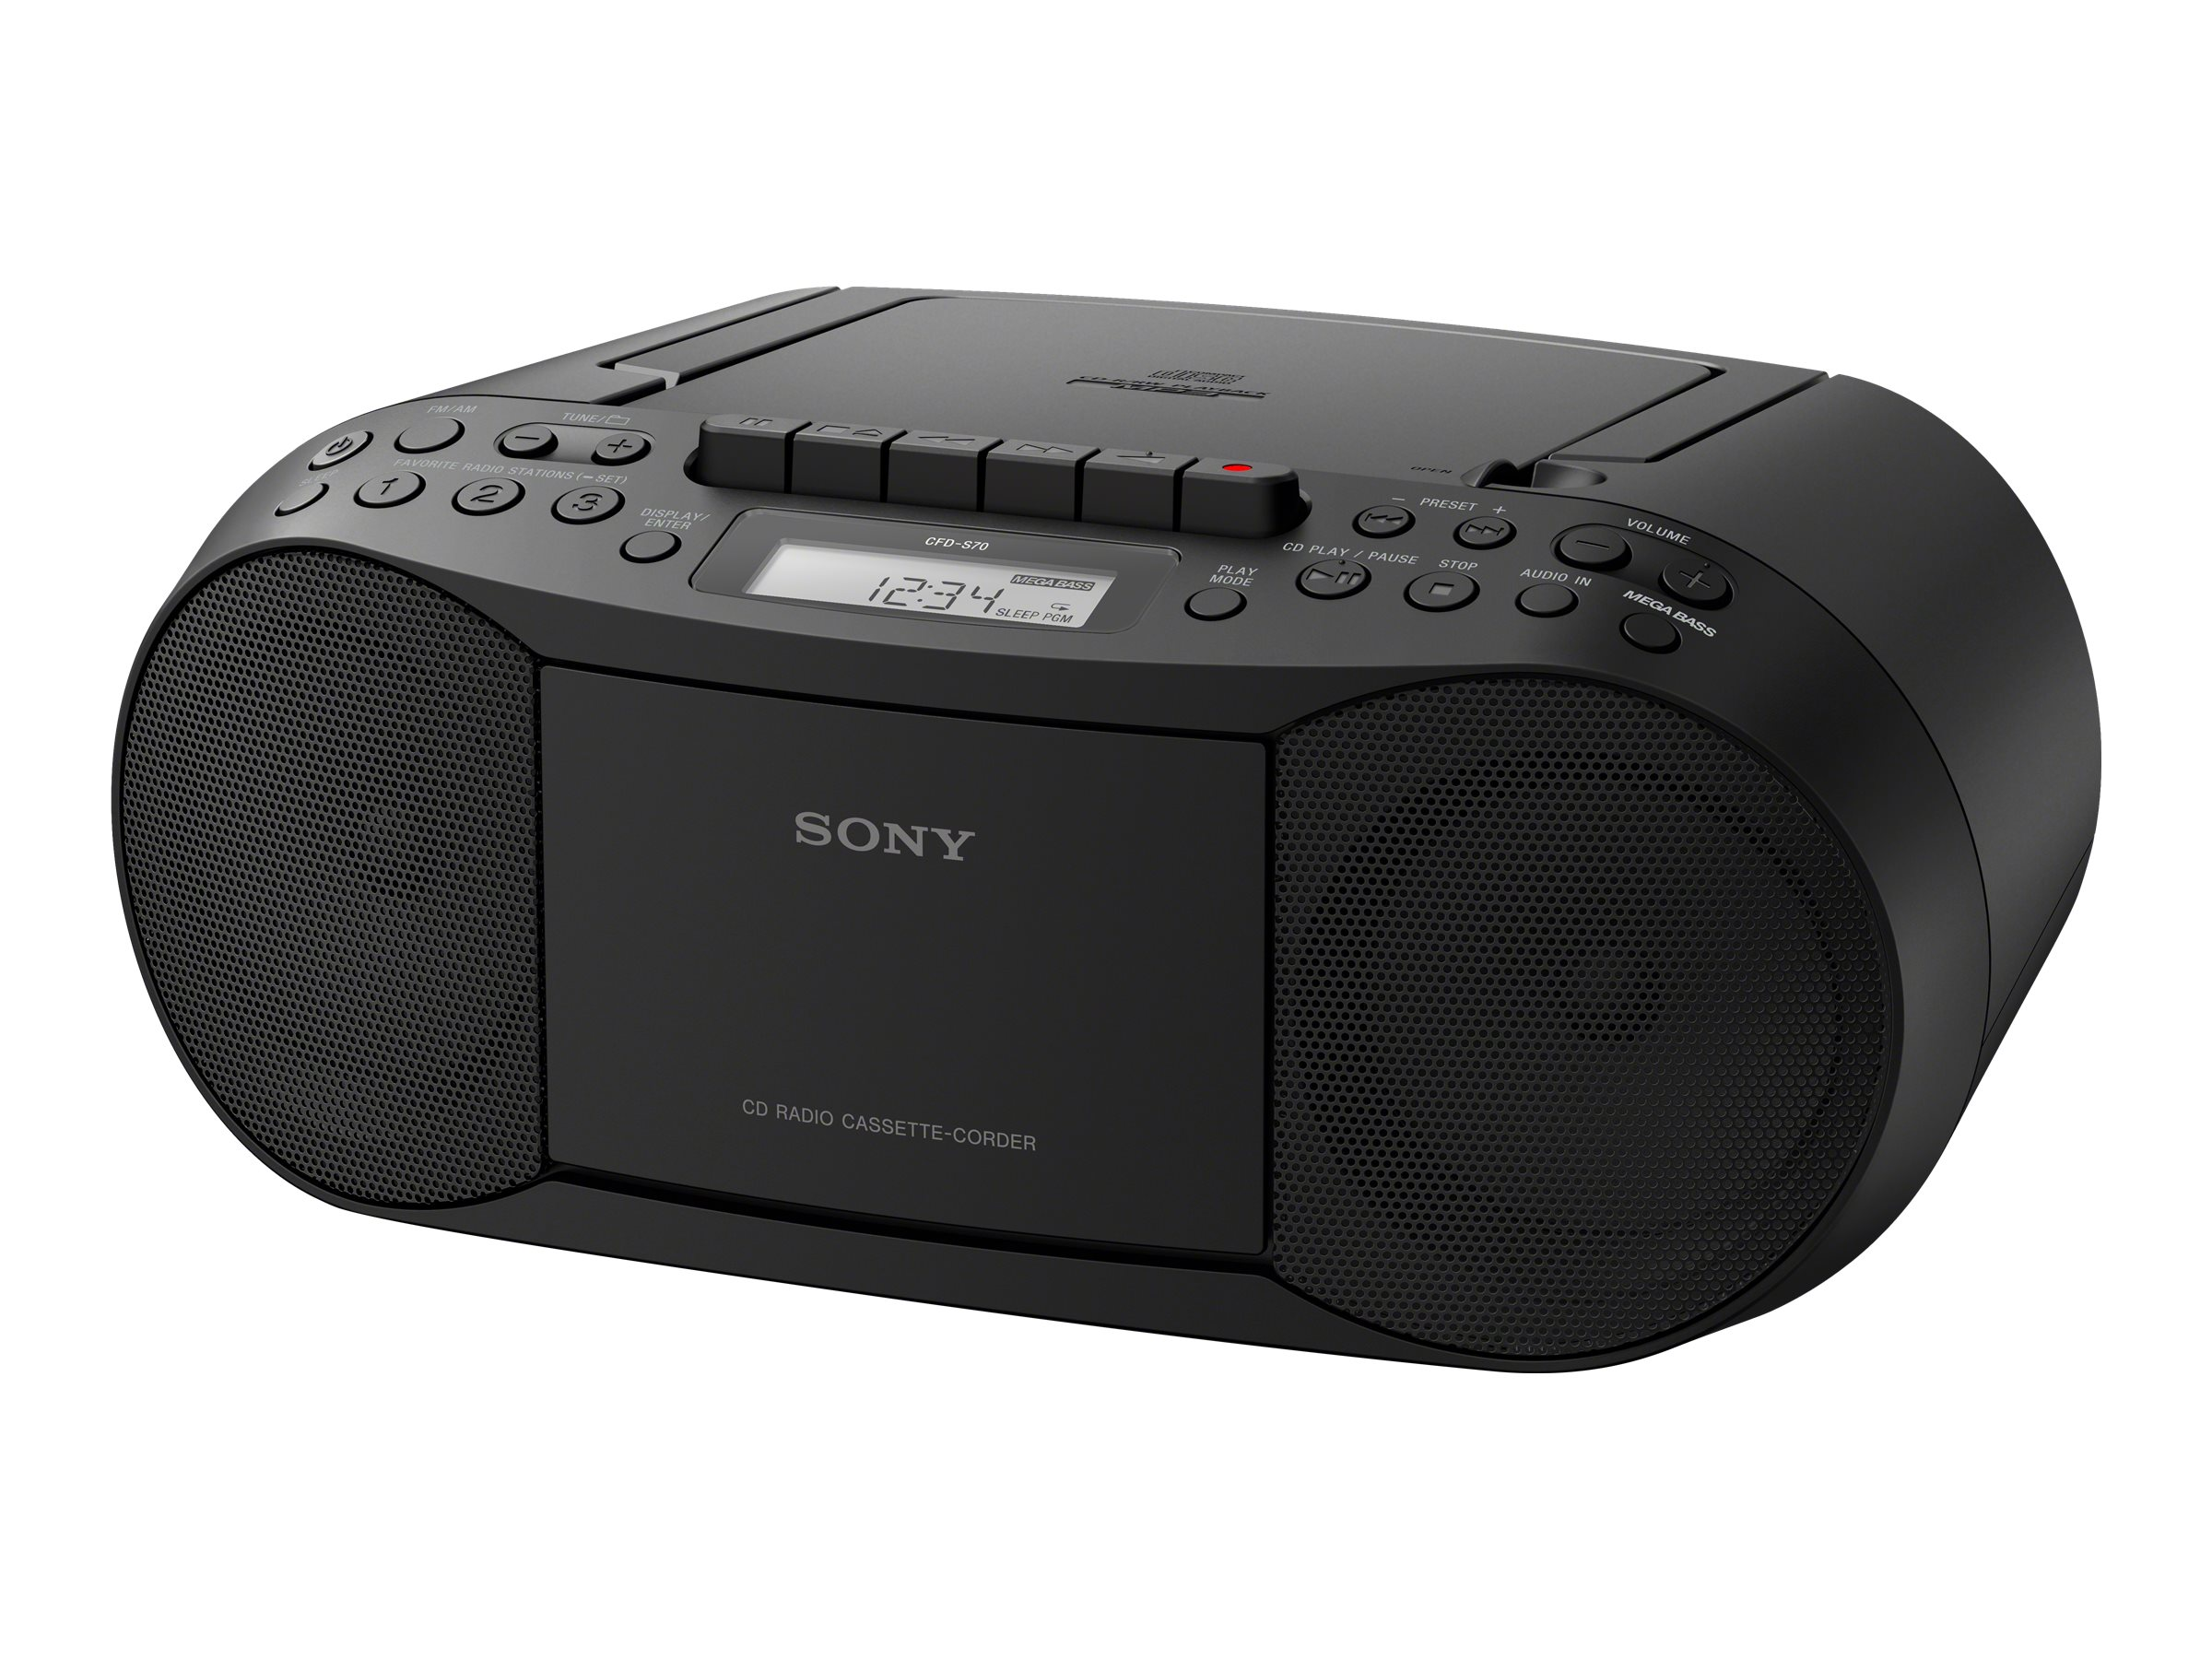 Carte Magasin Leclerc Luxe Radio Cd sony Radio Cd Noire Cfd S70w Of 39 Nouveau Carte Magasin Leclerc